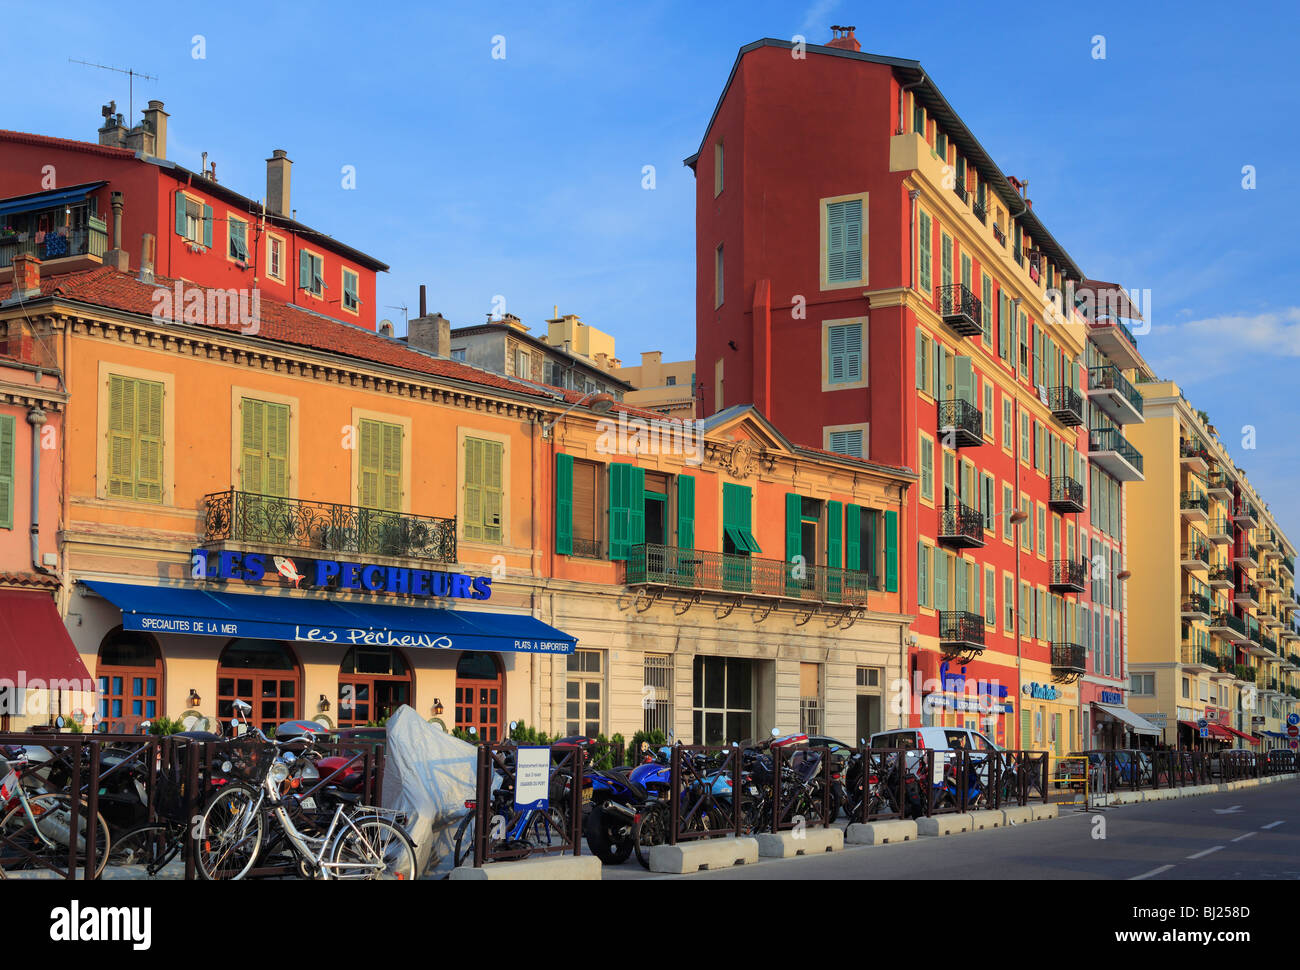 Street scene in Nice on the French riviera - Stock Image